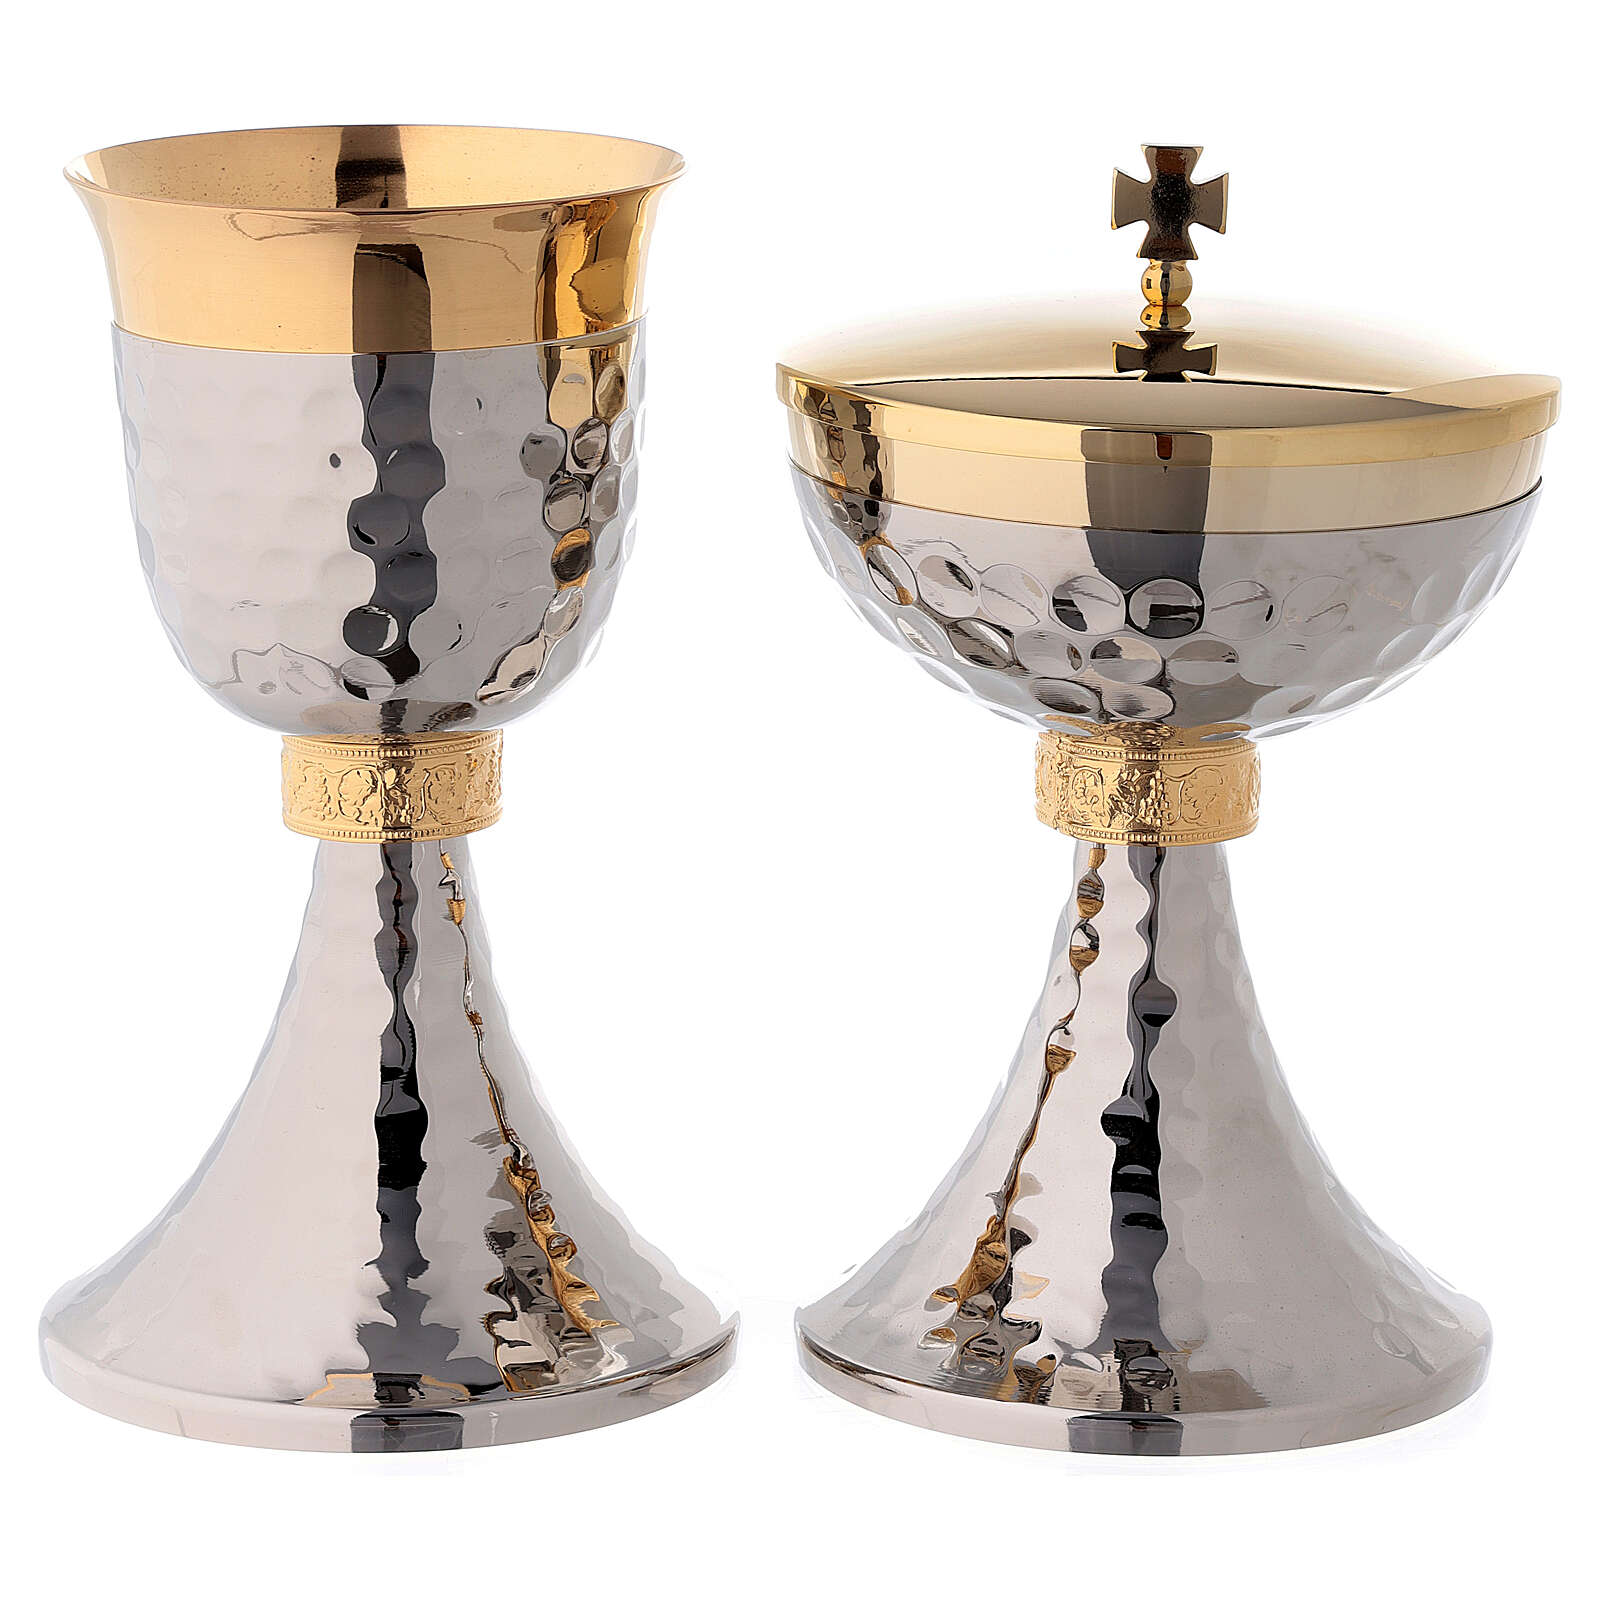 Hammered chalice and ciborium gold plated node with grapes and leaves 4